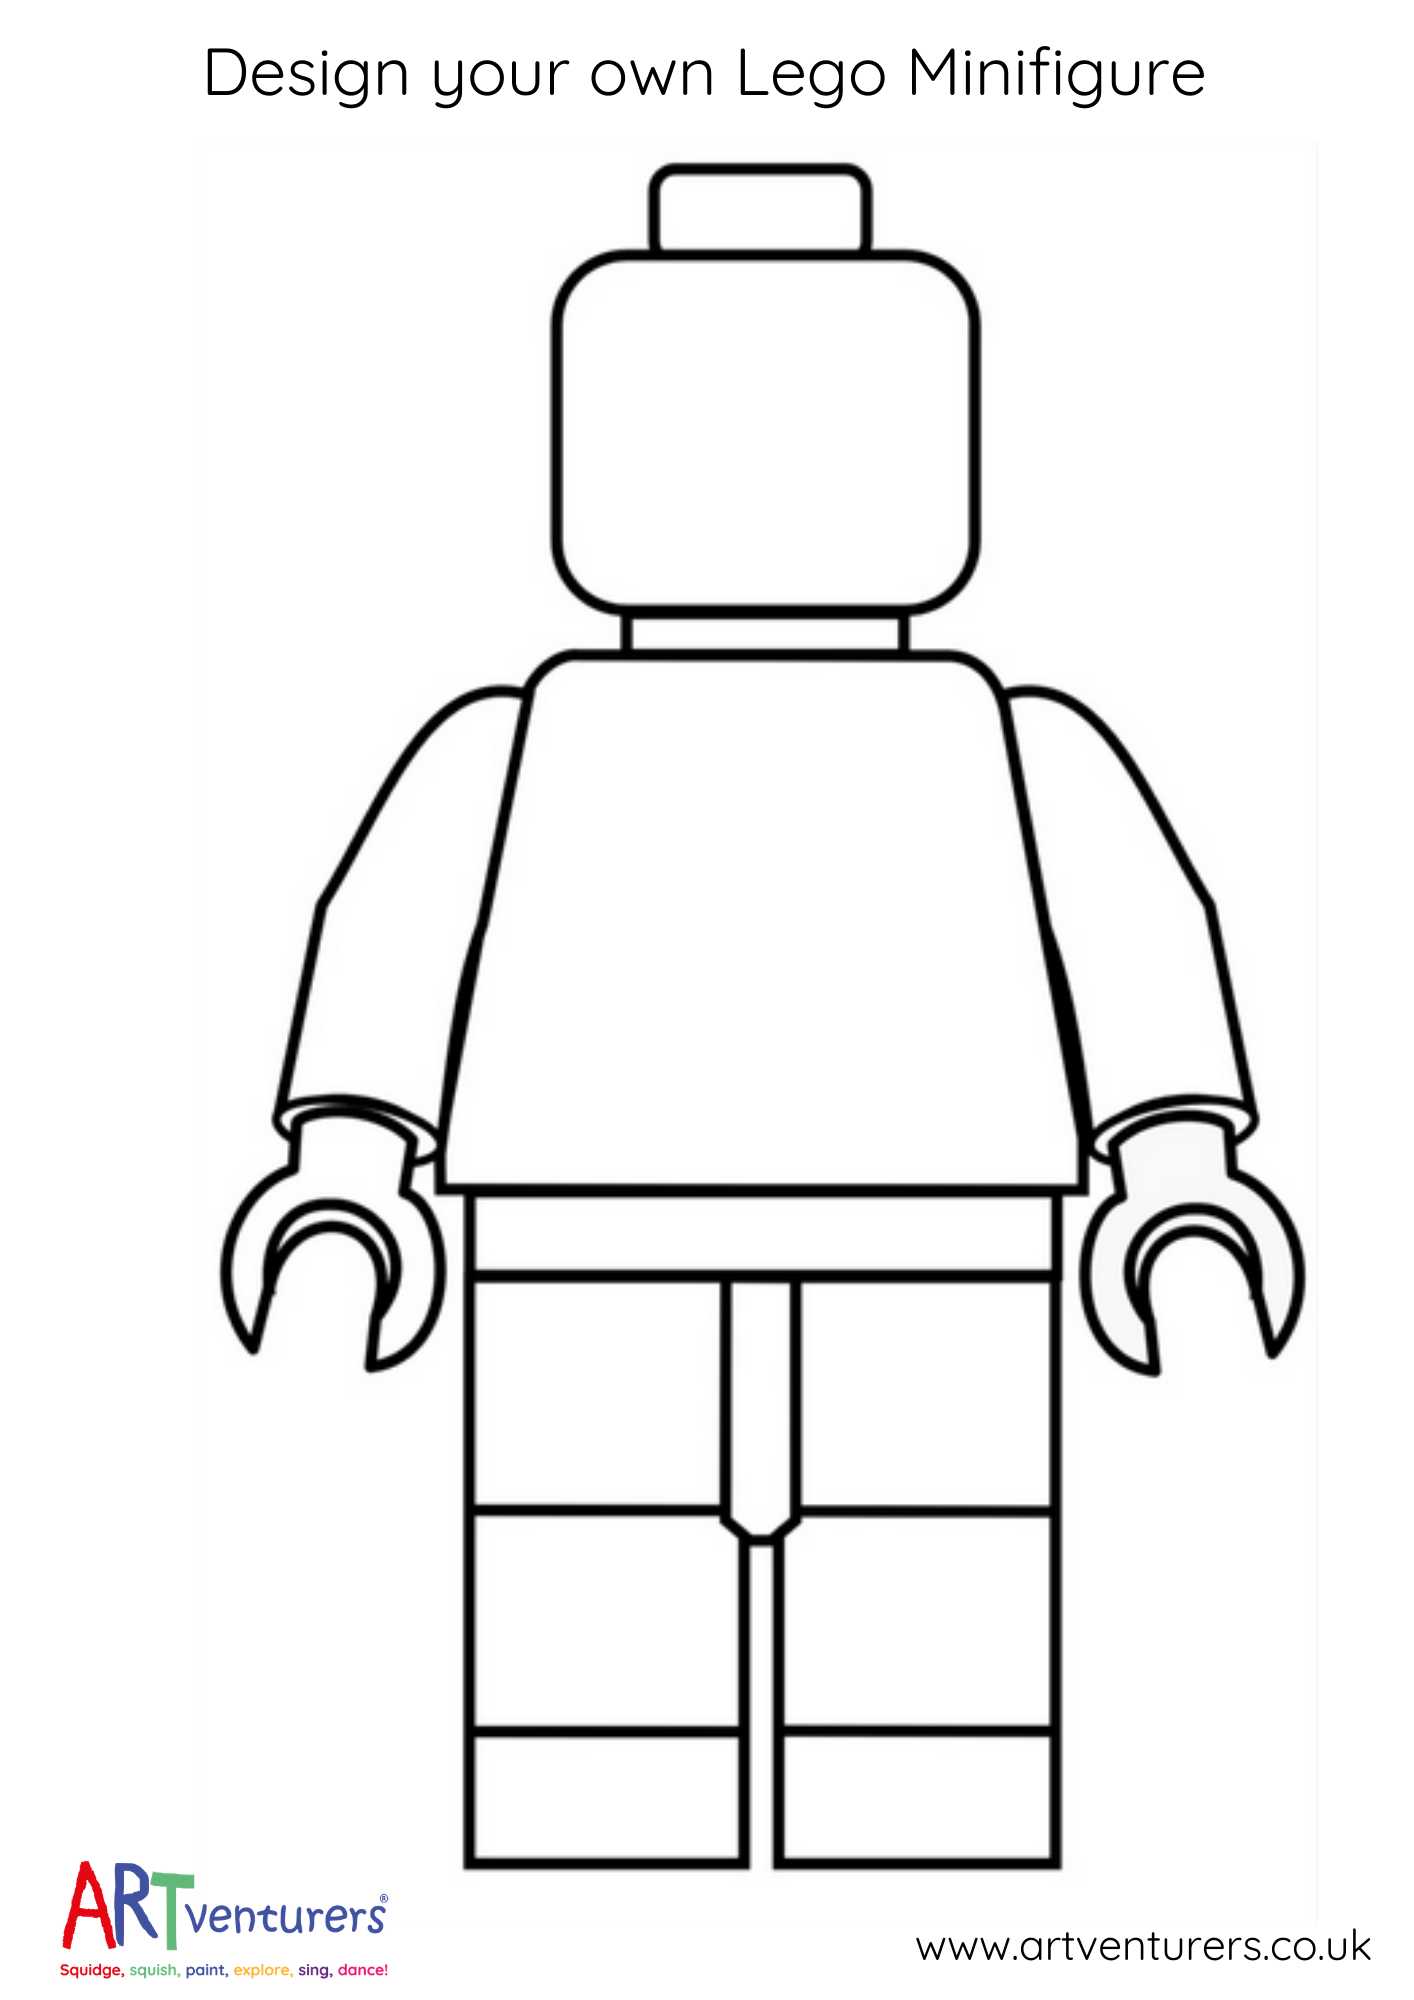 Design Your Own Lego Minifigure